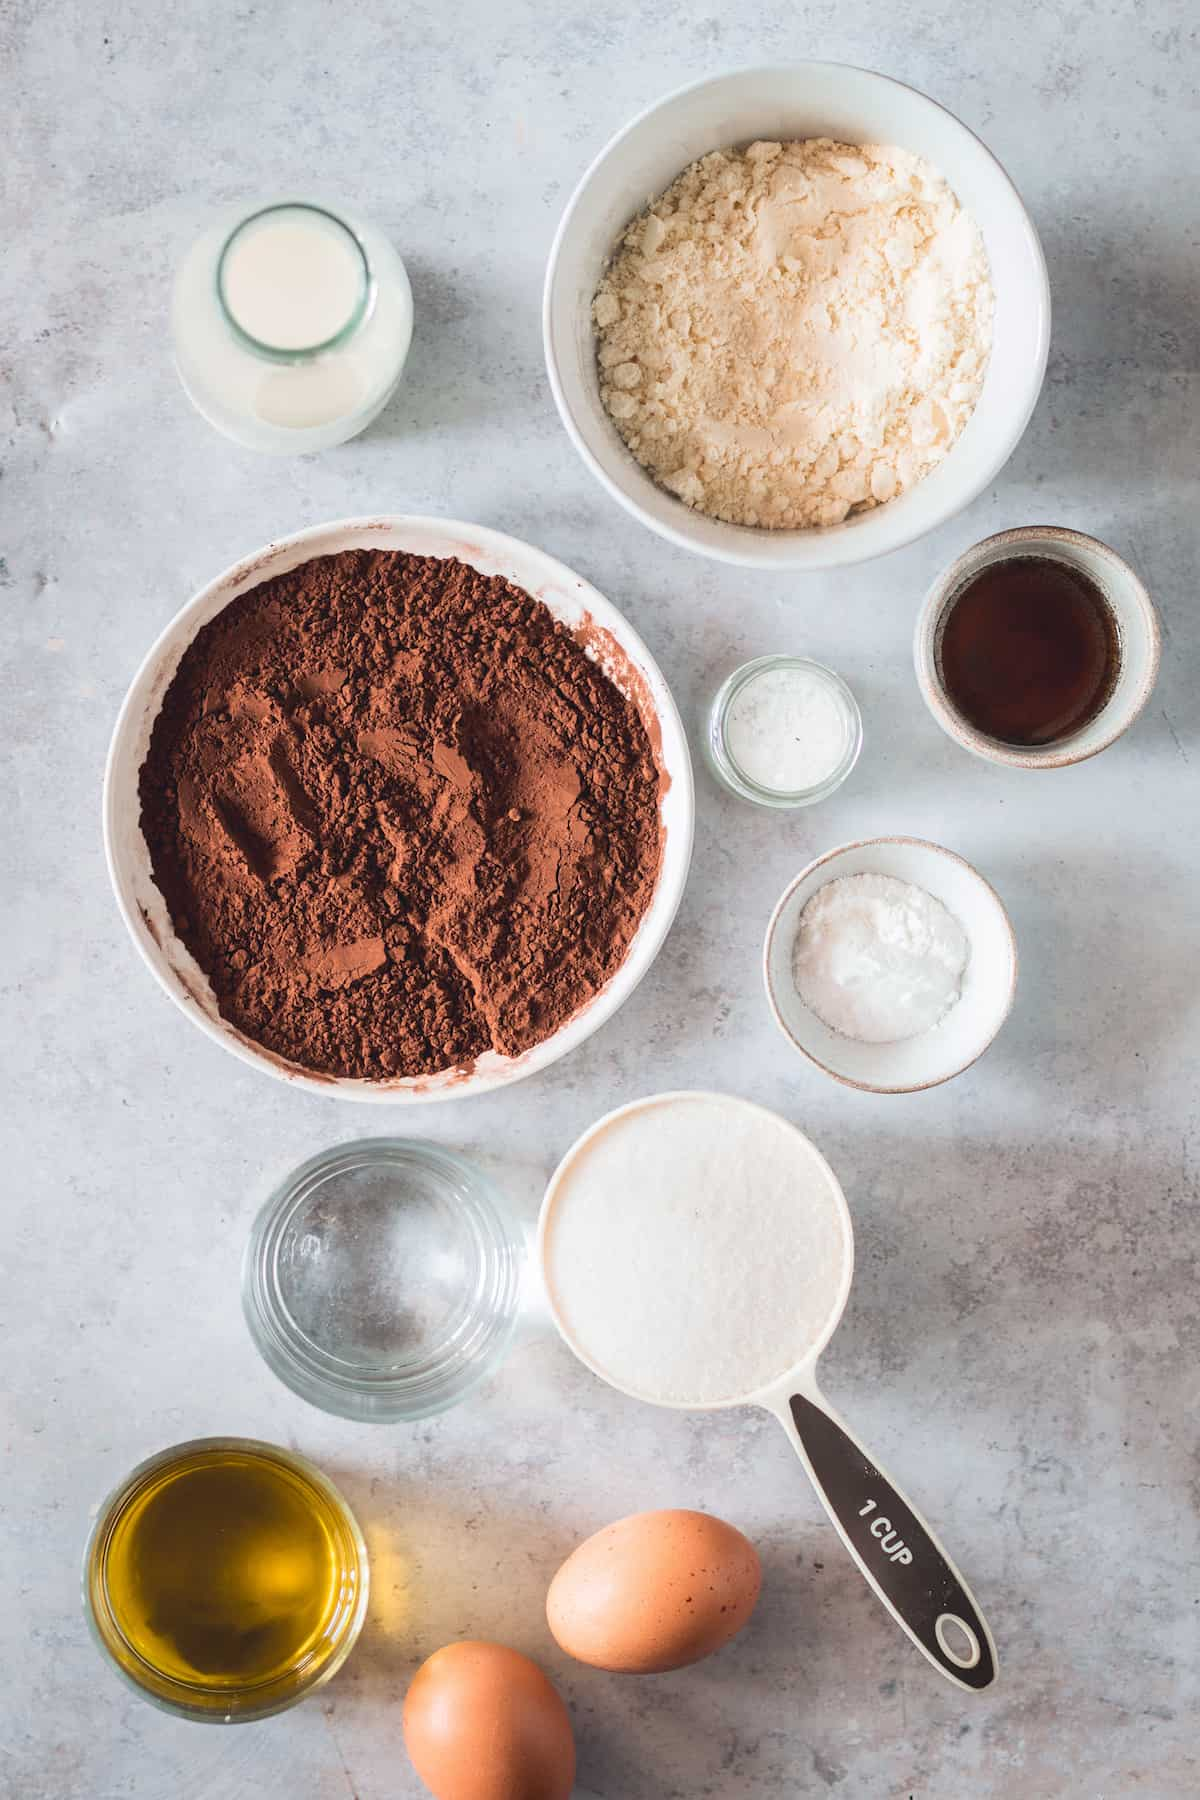 A Bowl of Cocoa Powder, A Bowl of Gluten-Free Flour, a Cup of Granilated Sugar, Two Eggs and the Rest of the Cupcake Ingredients on a Countertop